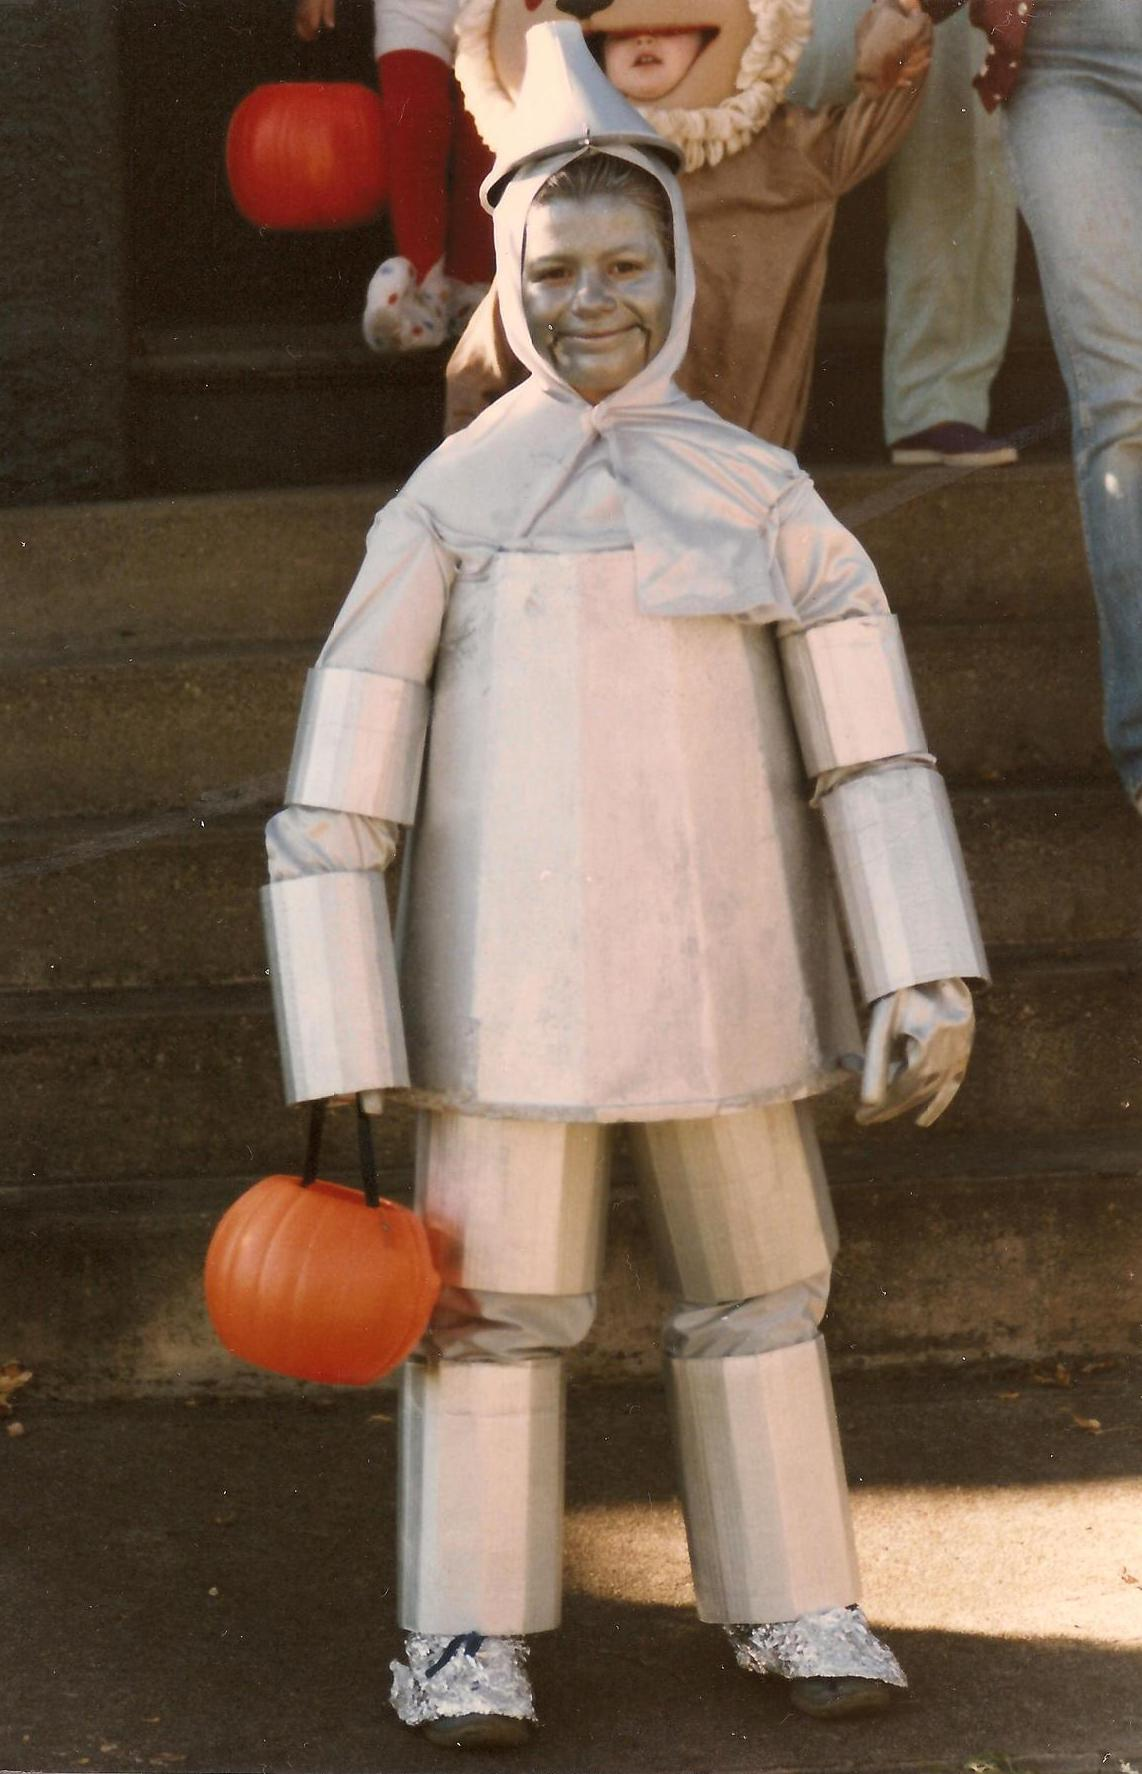 """I have always been terrified of The Wizard of Oz. My mom made me this costume at age 8 to go along with my siblings and cousins as a group for trick-or-treating that year. Because every 8-year-old girl wants to be the Tin Man for Halloween? My 'body' was made of a Styrofoam container a rose bush came in. I couldn't sit or go to the bathroom all day."" -- Nina Schmidt, 35"